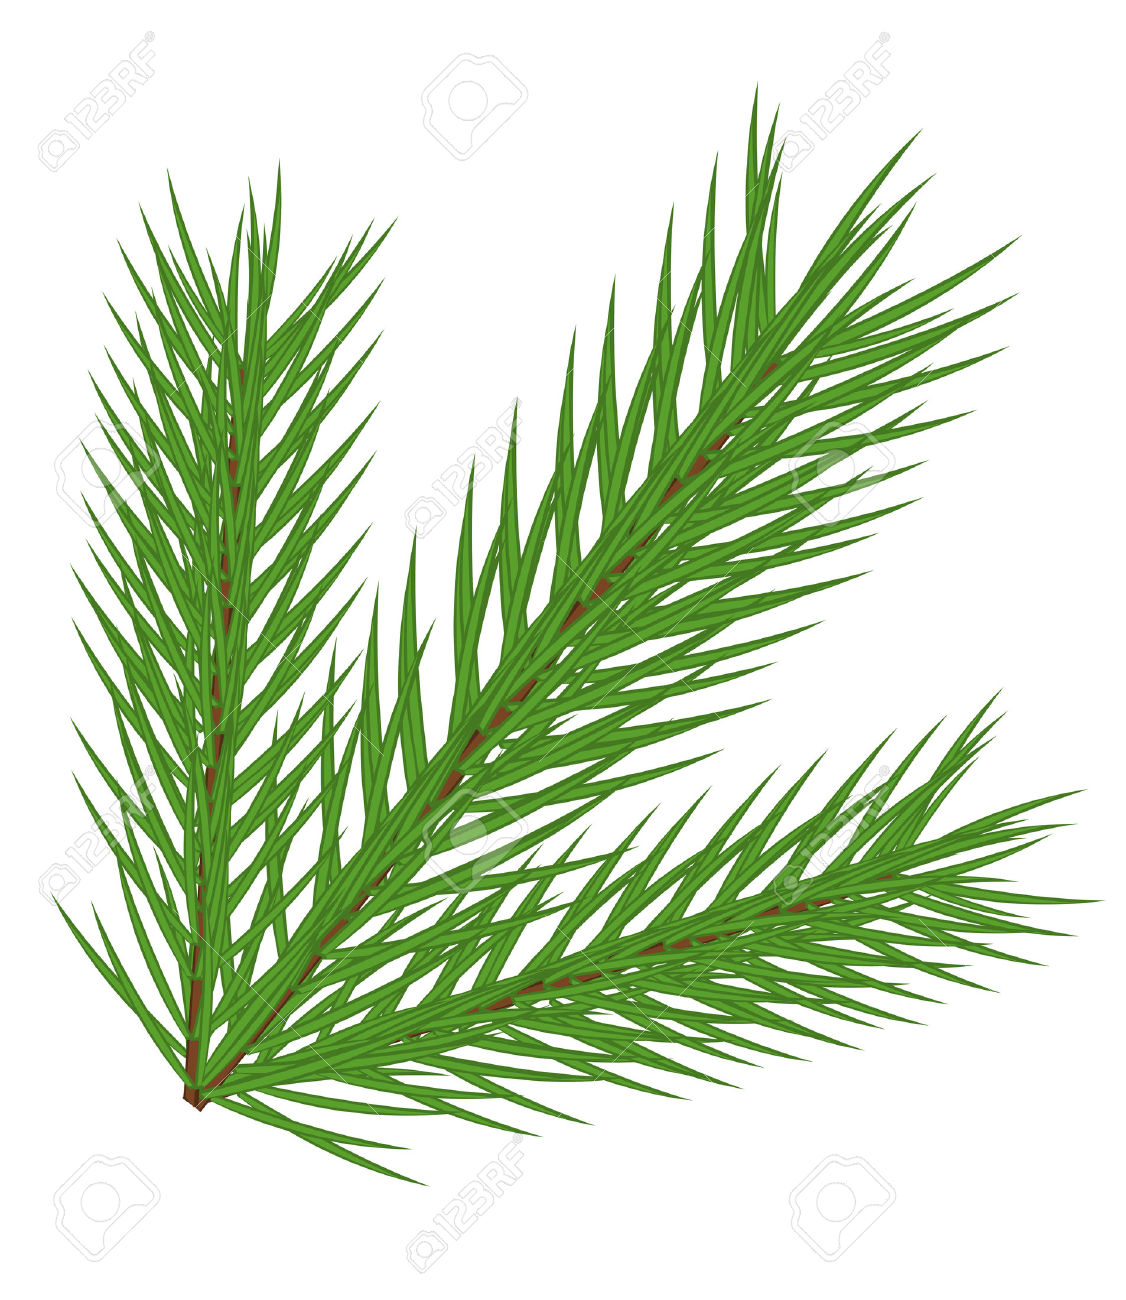 Spruce twig clipart #18